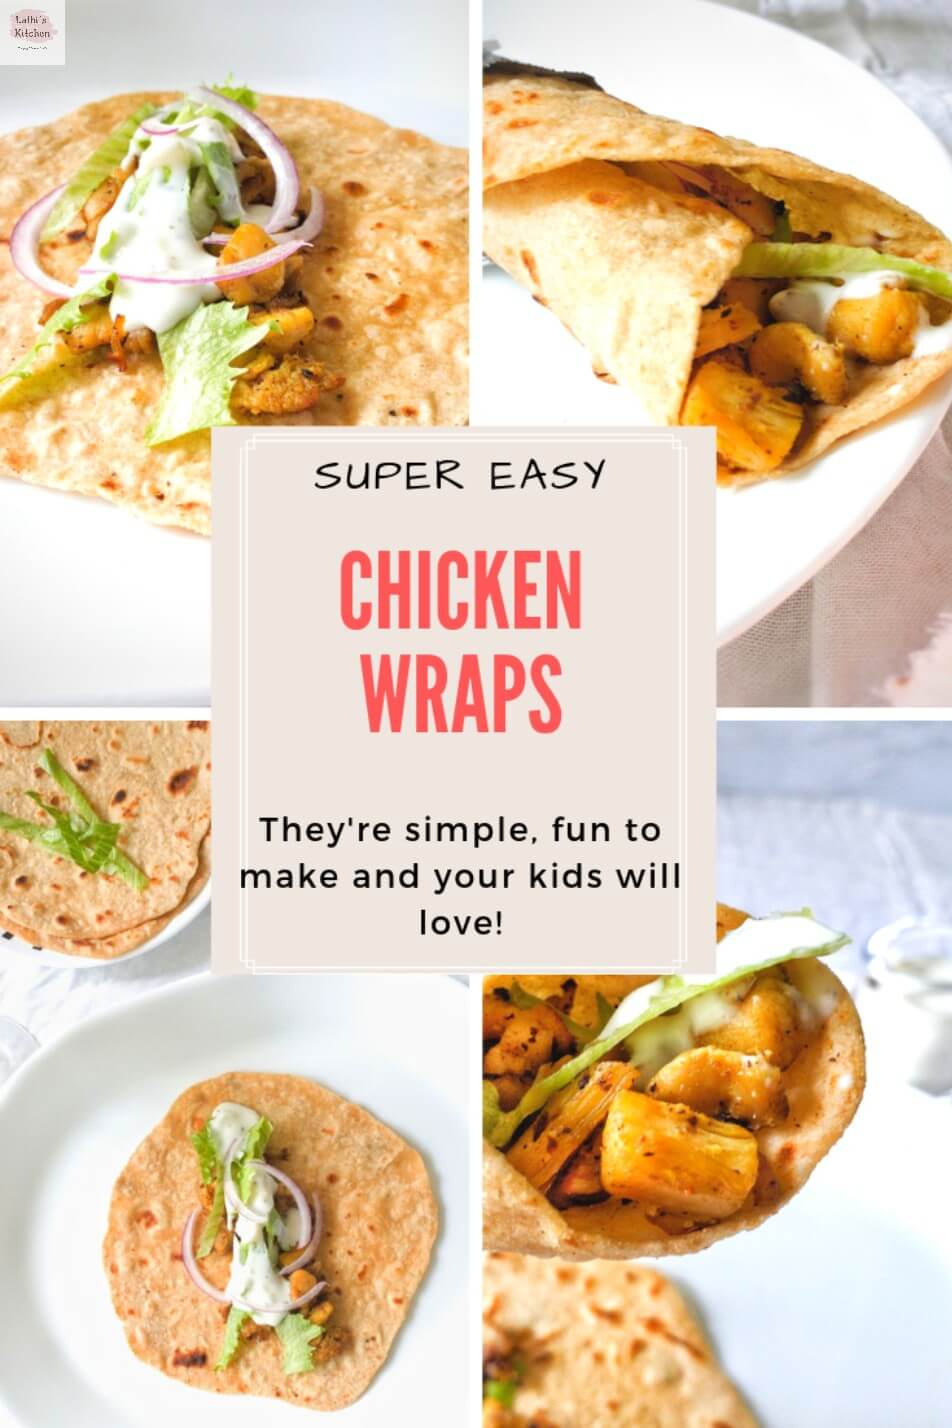 Chicken wrap, easy chicken wraps, lunch idea,Chicken, quick chicken wrap